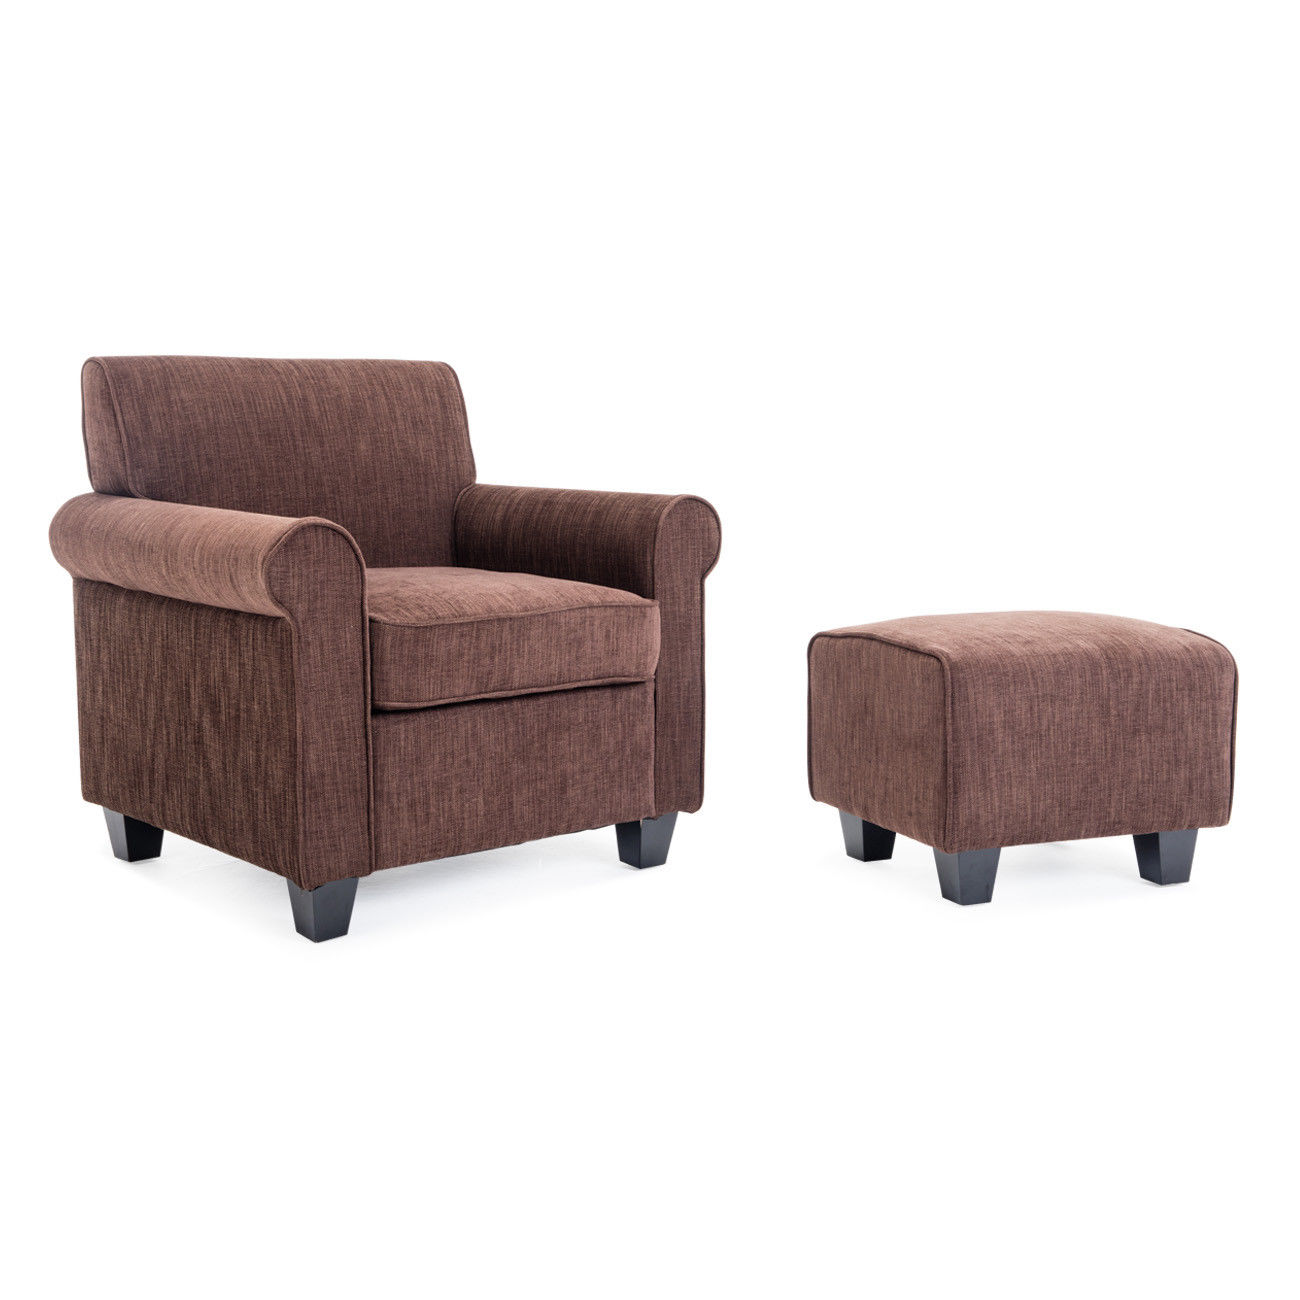 brown accent chair with ottoman outdoor chairs for front porch ghp wood frame upholstered polyester fabric furniture set